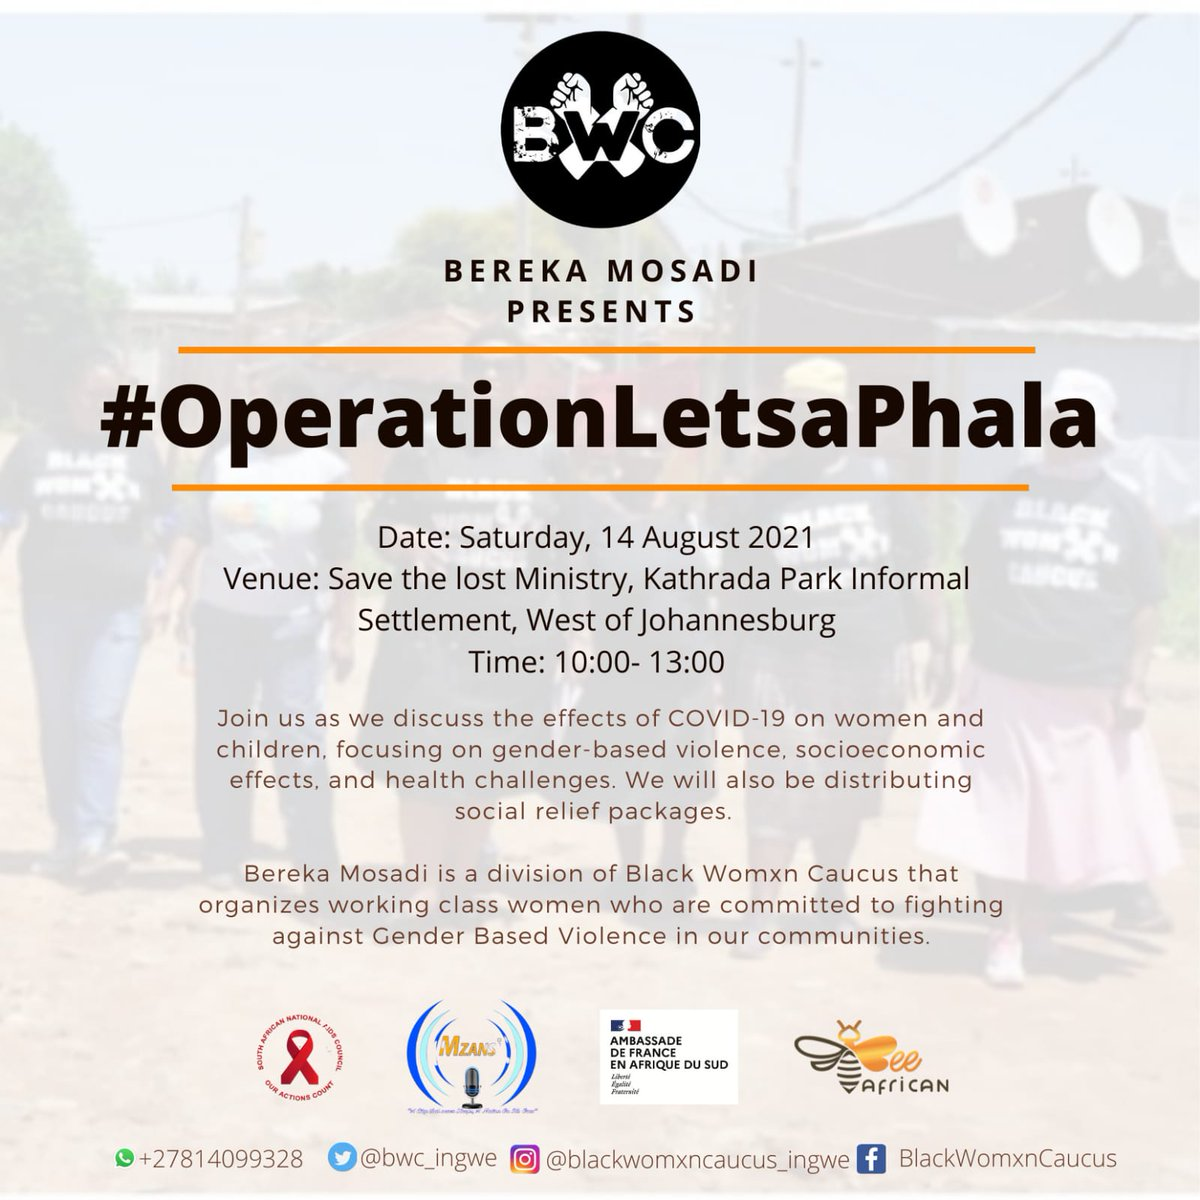 Chair @msletsike will be hosted by Bereka Mosadi, a division of @BWC_ingwe #OperationLetsaPhala, tomorrow 14 August in Kathrada Park Informal Settlement.  @msletsike will unpack the effects #COVID19 on womxn, health services & the continuous work @CsfSanac is doing in communities https://t.co/zuXfA2NFeH